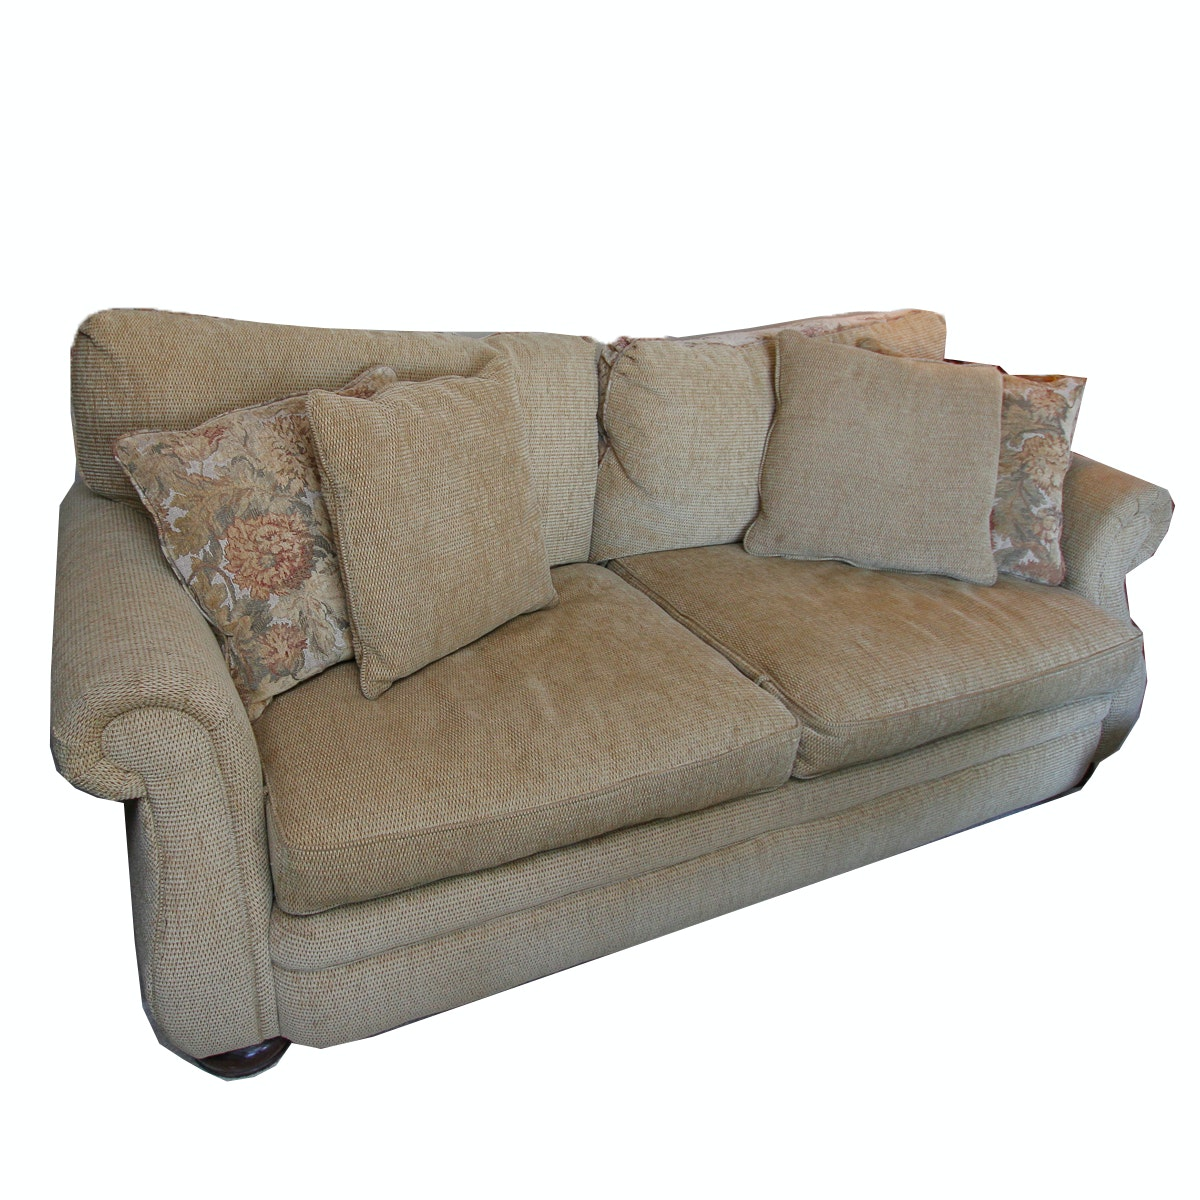 Upholstered Sofa by Hickory Mark